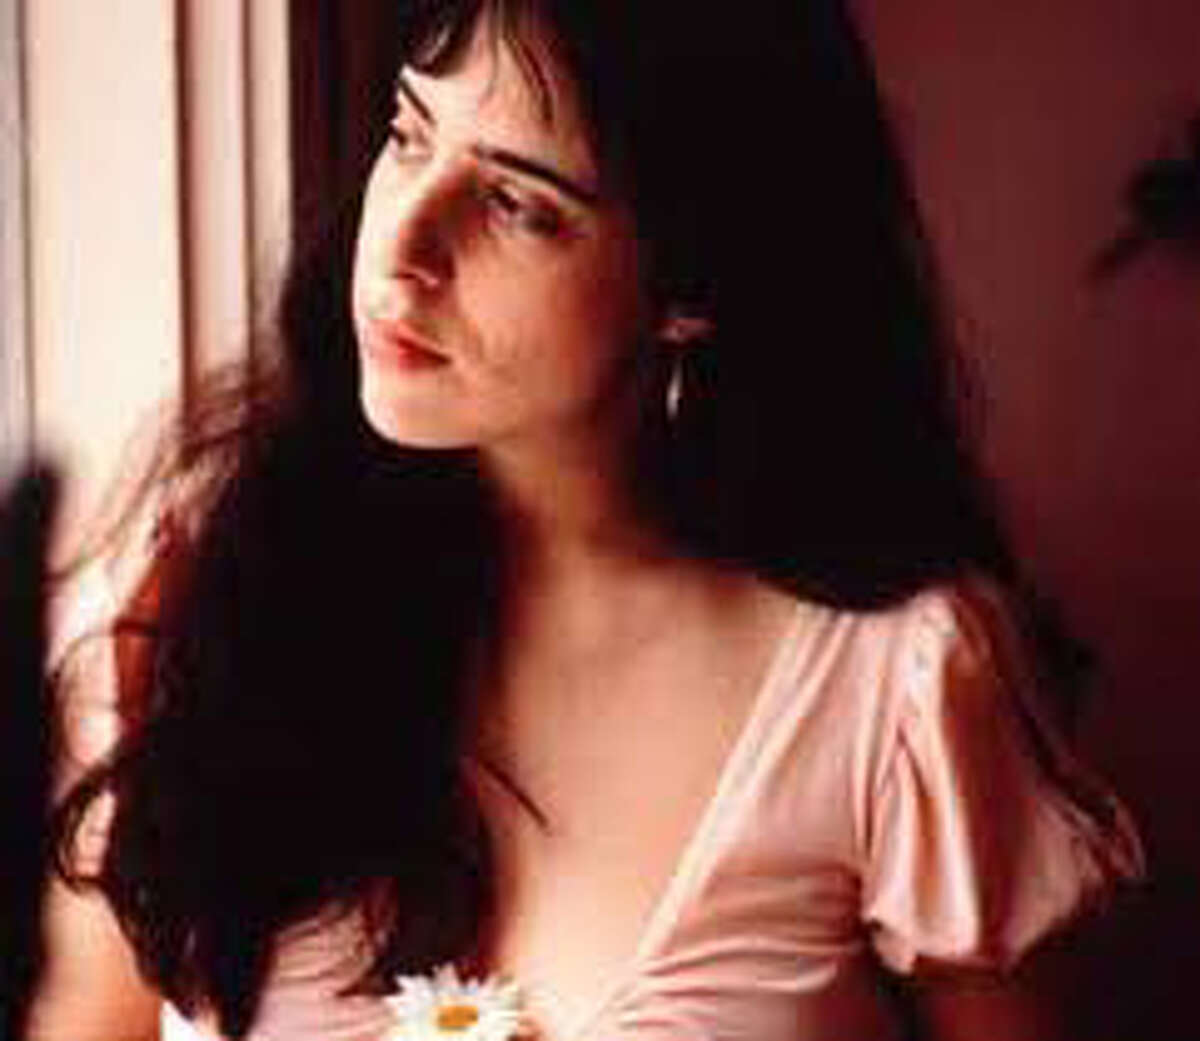 Laura Nyro, who lived in Danbury until her death in 1997, is nominated to be in the Rock 'N Roll Hall of Fame in 2012.